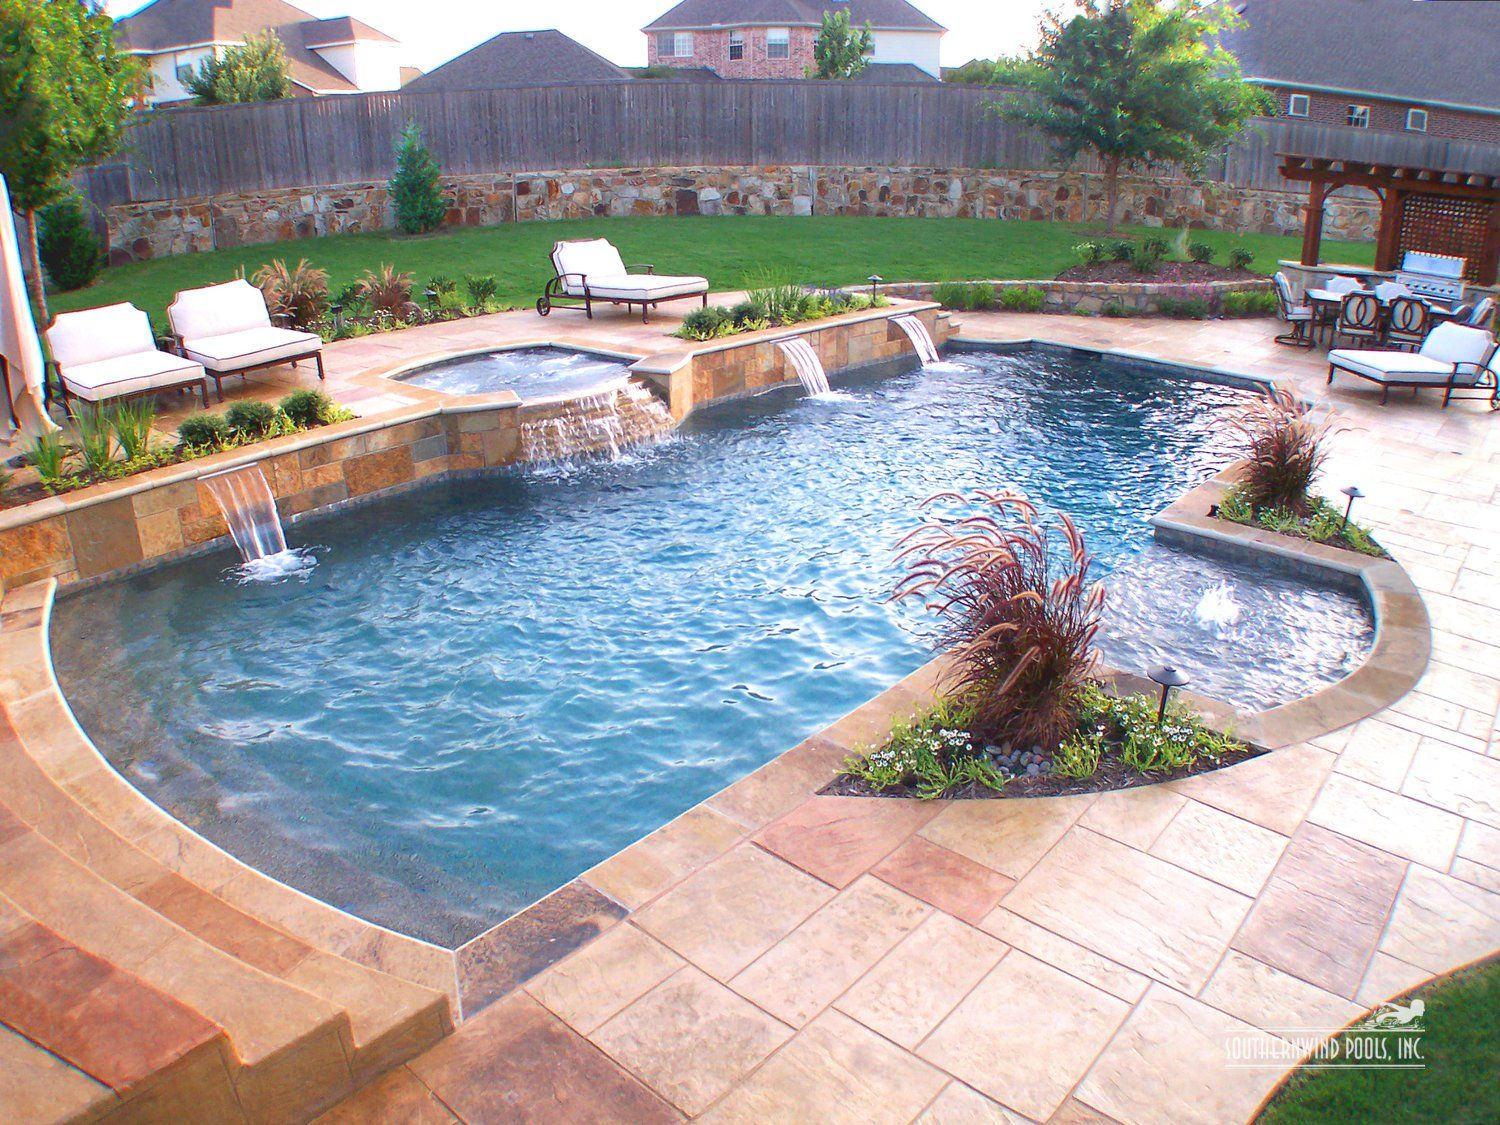 Southernwind Pools   Our Pools: Classic / Formal Pools ... on Nice Backyard Landscaping Ideas id=58587